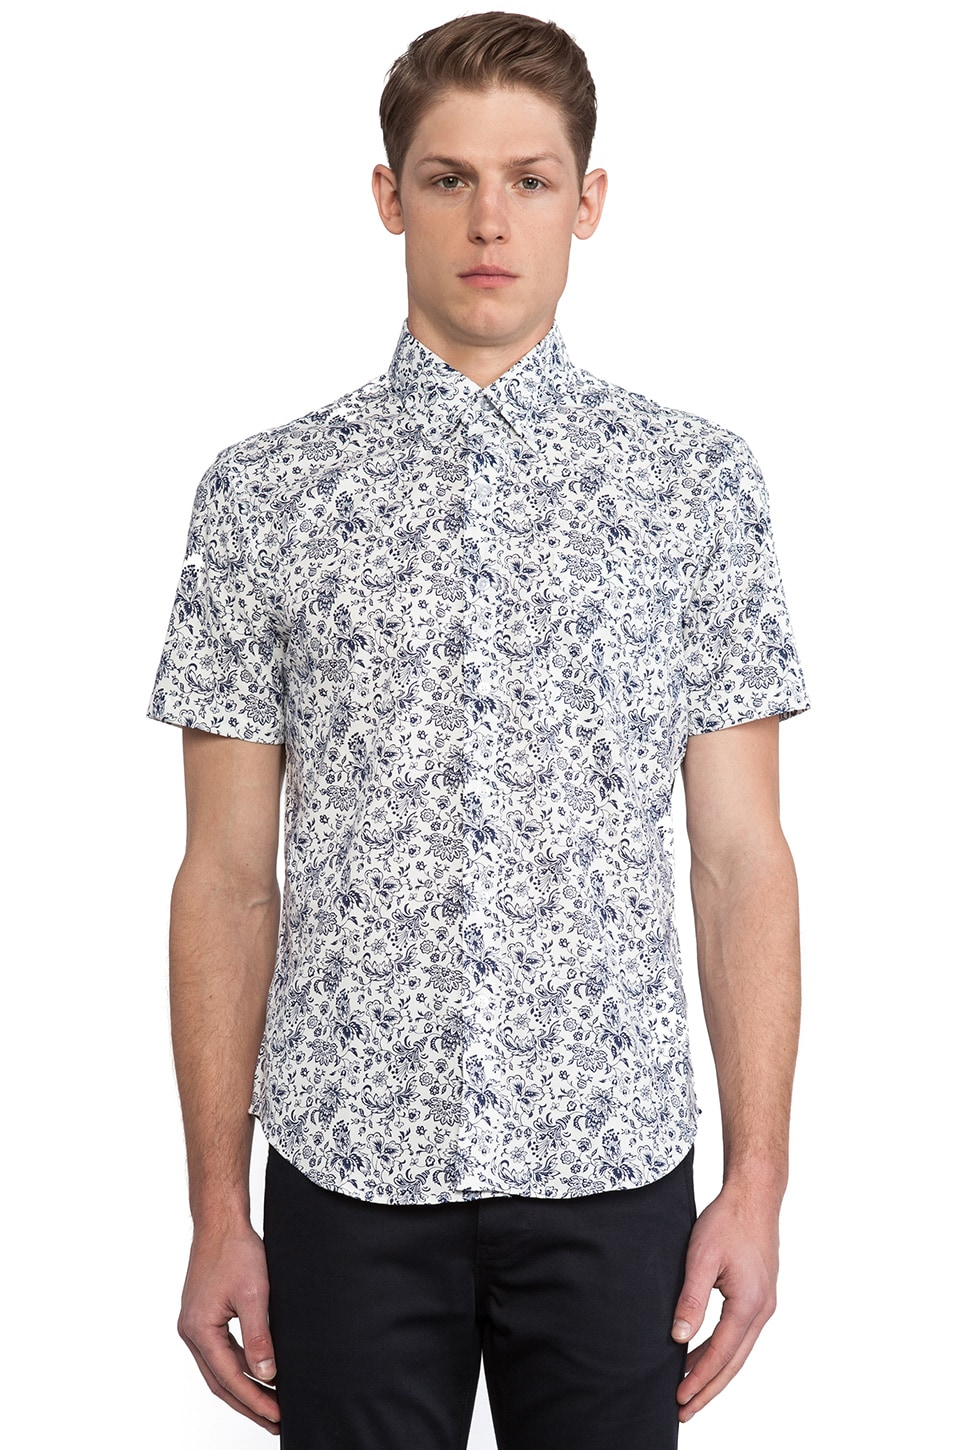 United Stock Dry Goods Provencal Print Button Down in White & Blue